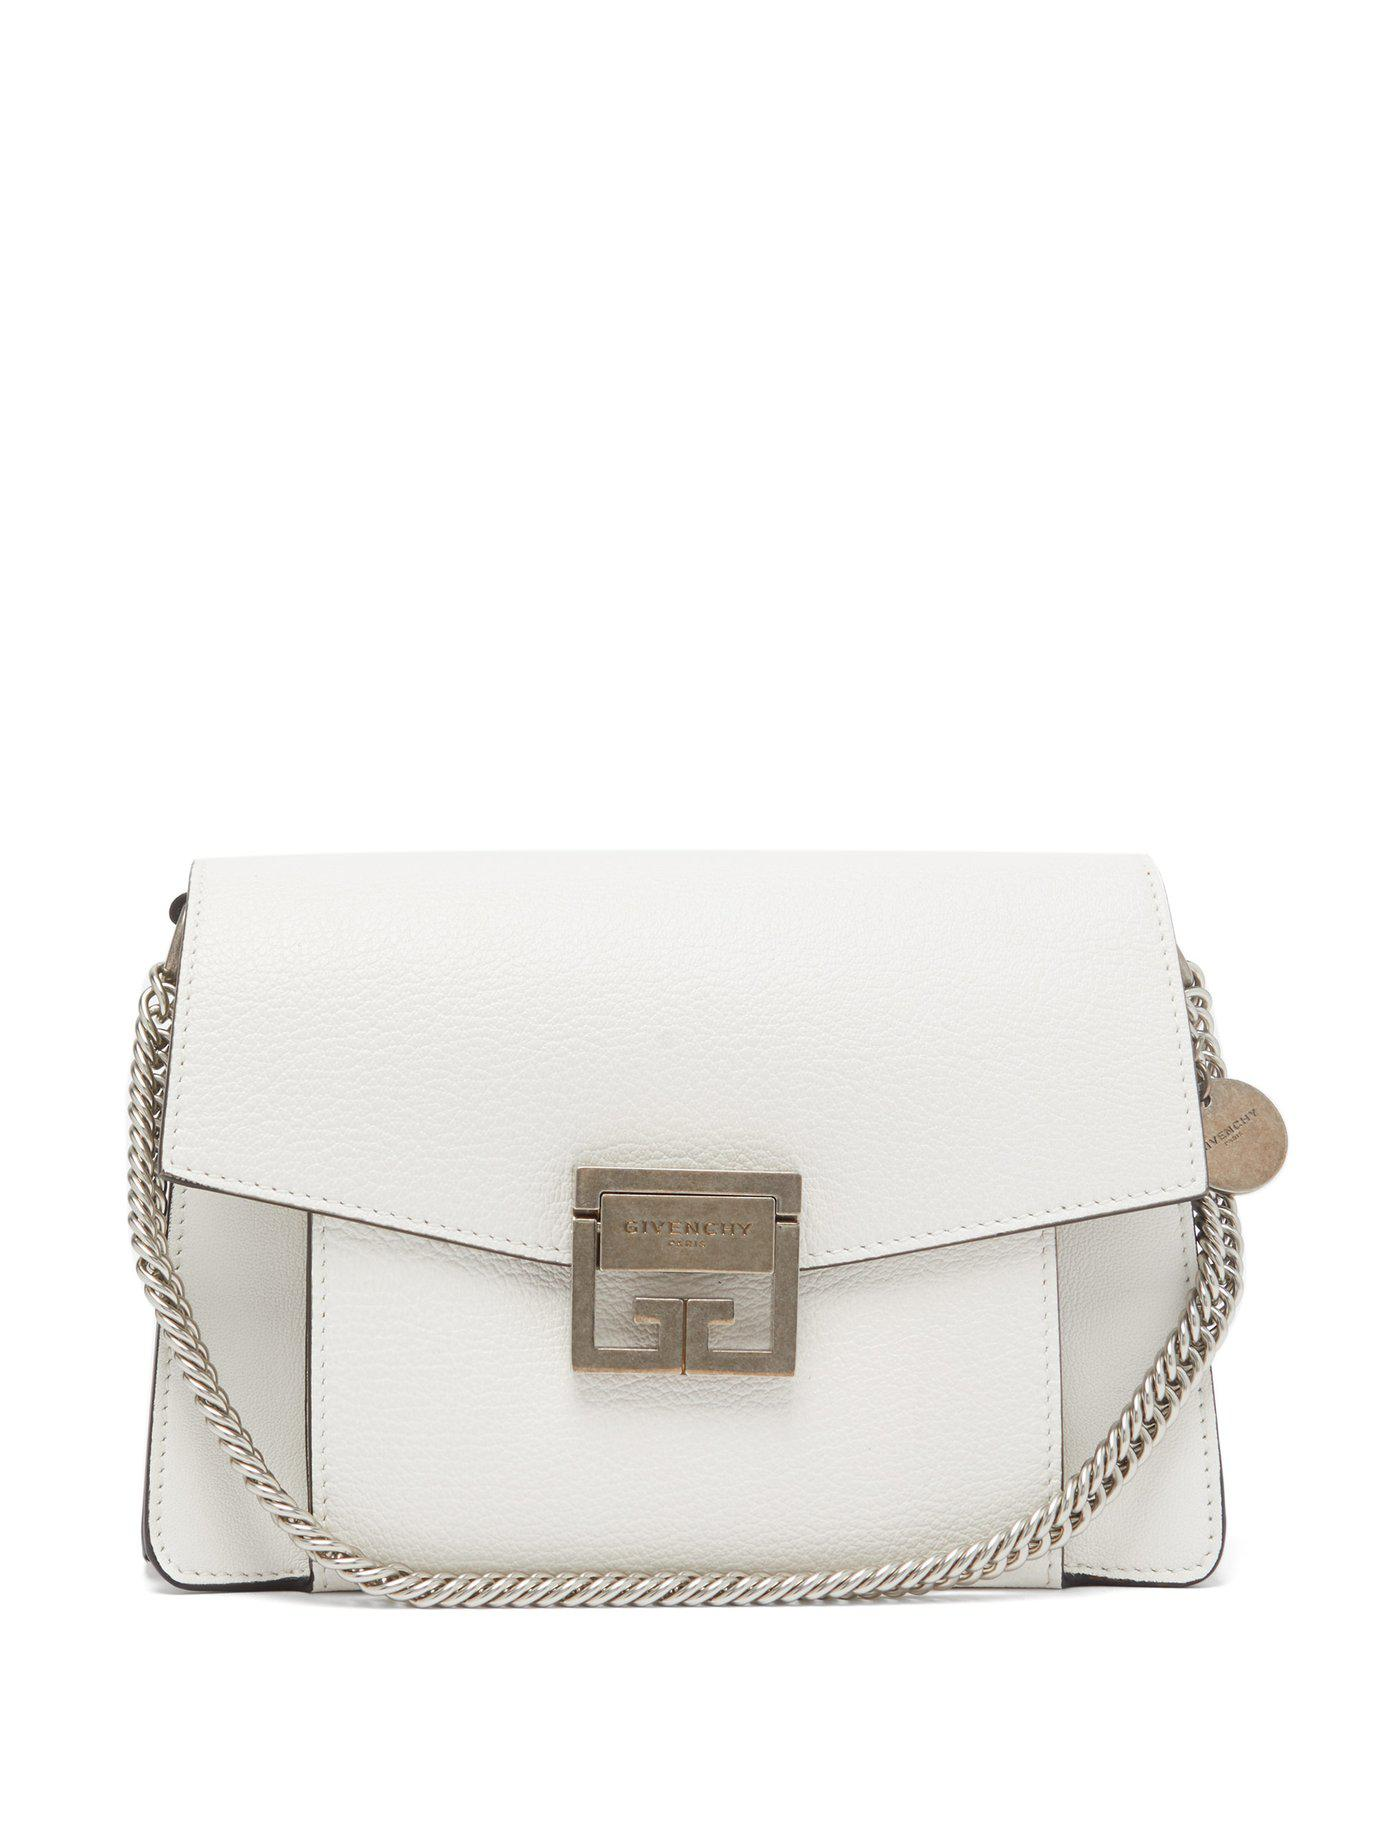 120009c31604 Lyst - Givenchy Gv3 Small Leather Cross Body Bag in White